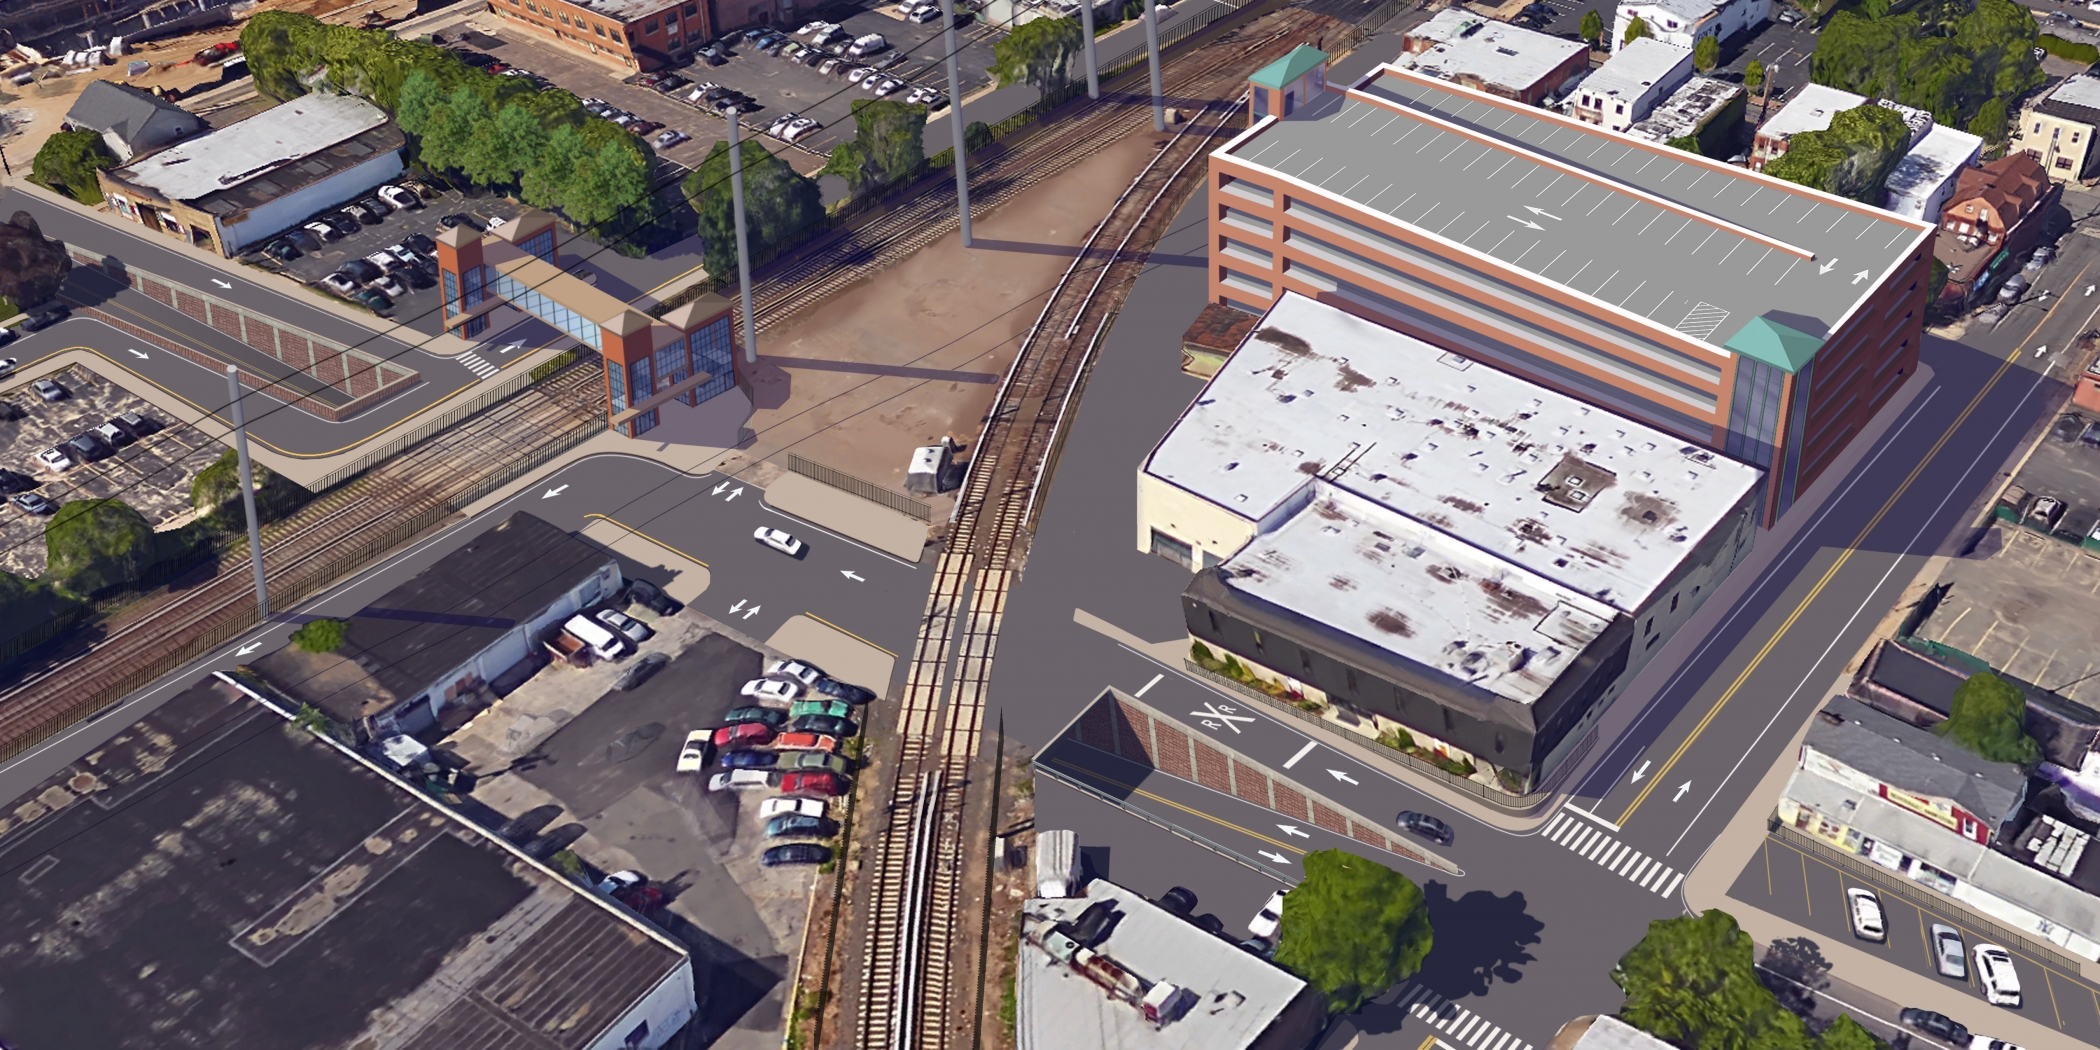 "<span class=""crossing tag""></span>Illustrative Rendering of Willis Avenue Crossing (Alternative 1)"